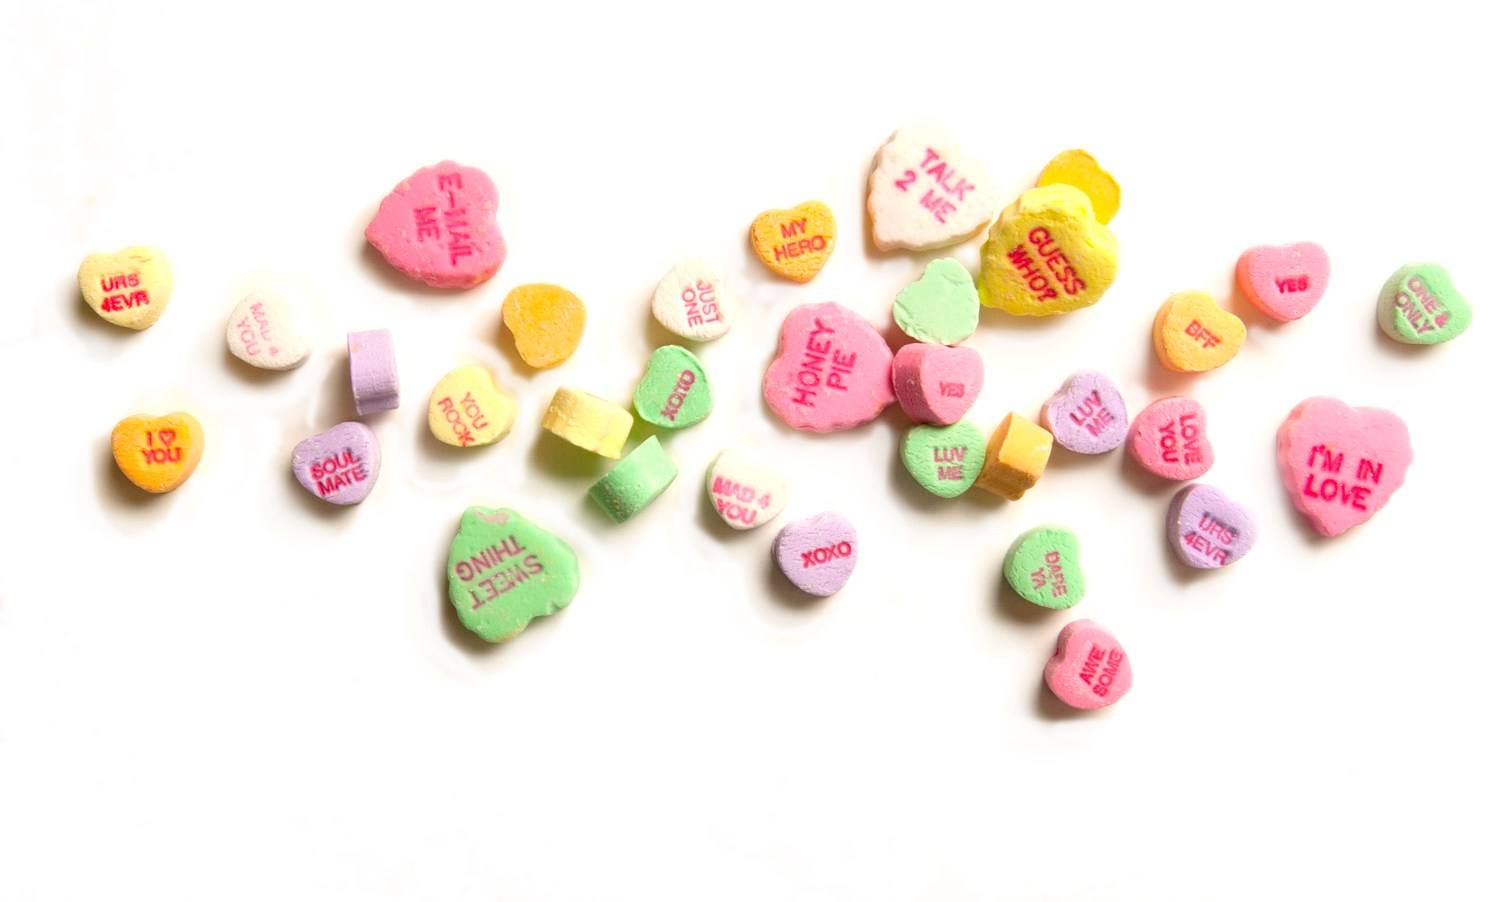 Valentines Day candy.